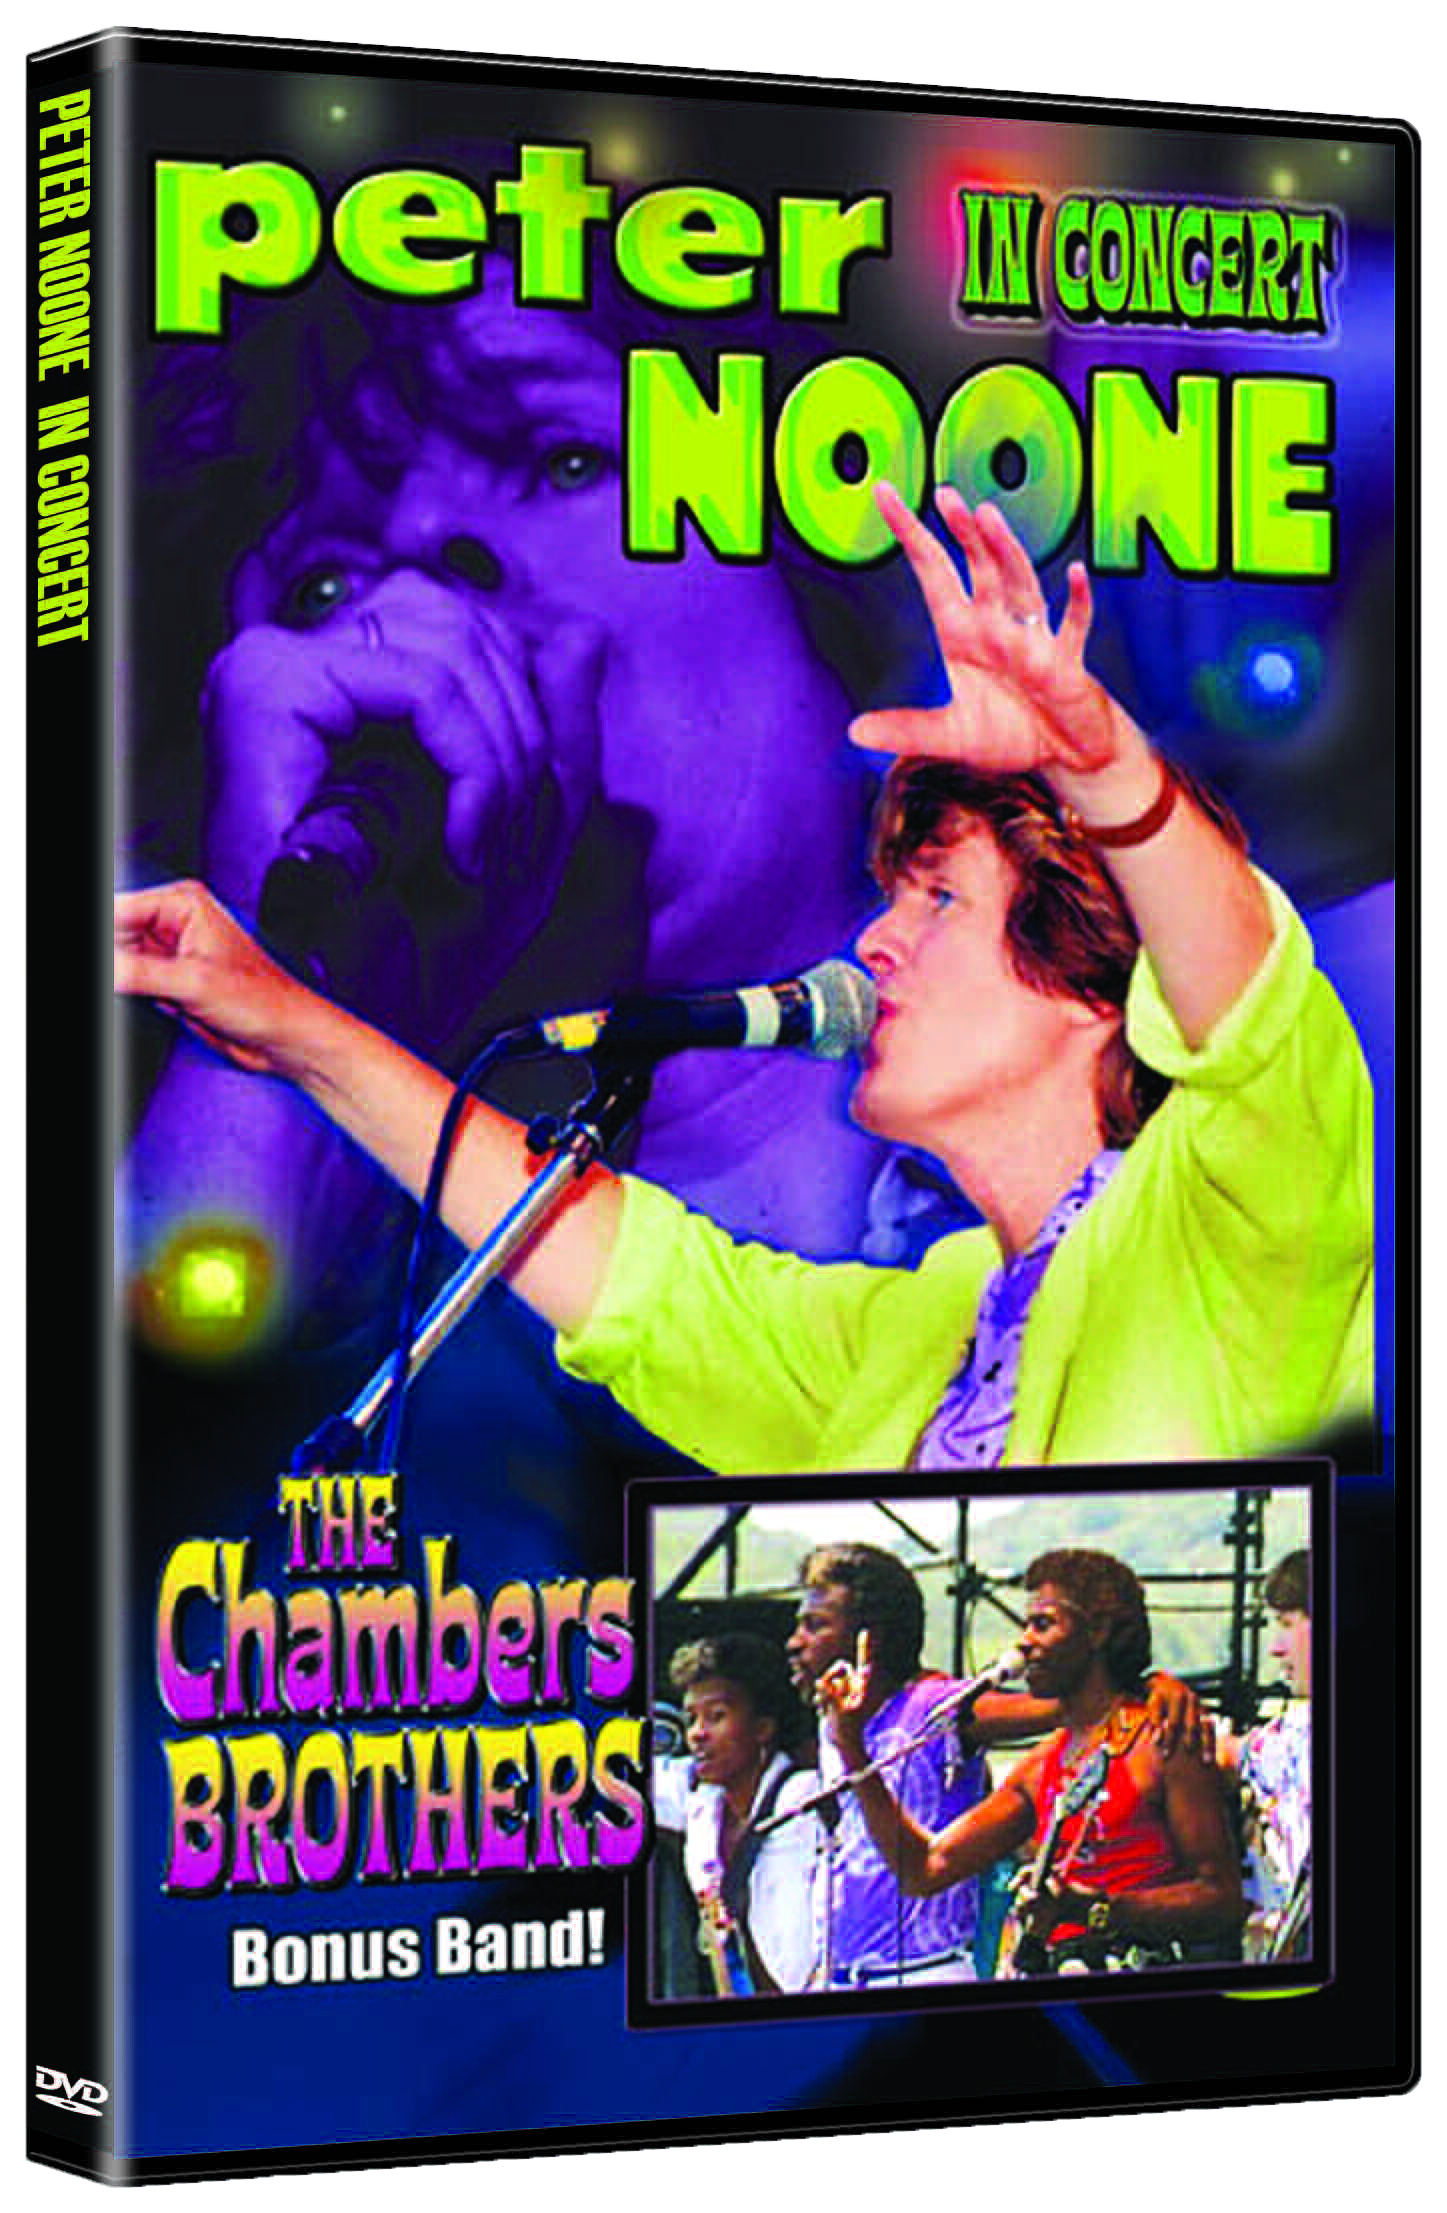 PETER NOONE: LIVE IN CONCERT